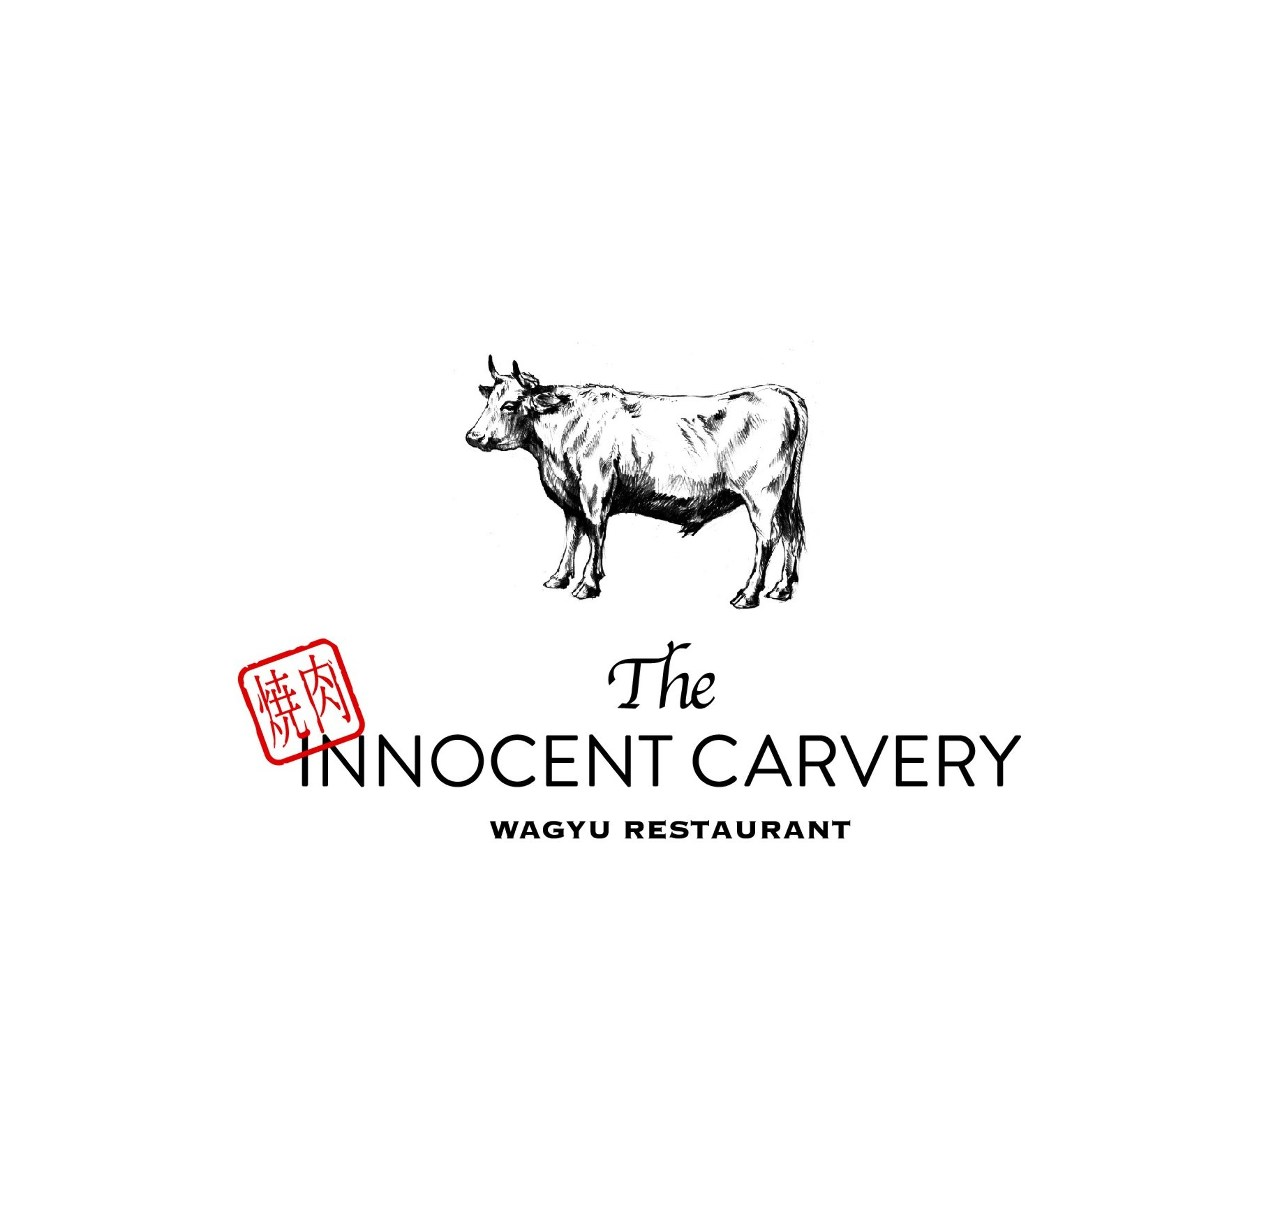 烧肉 The INNOCENT CARVERY